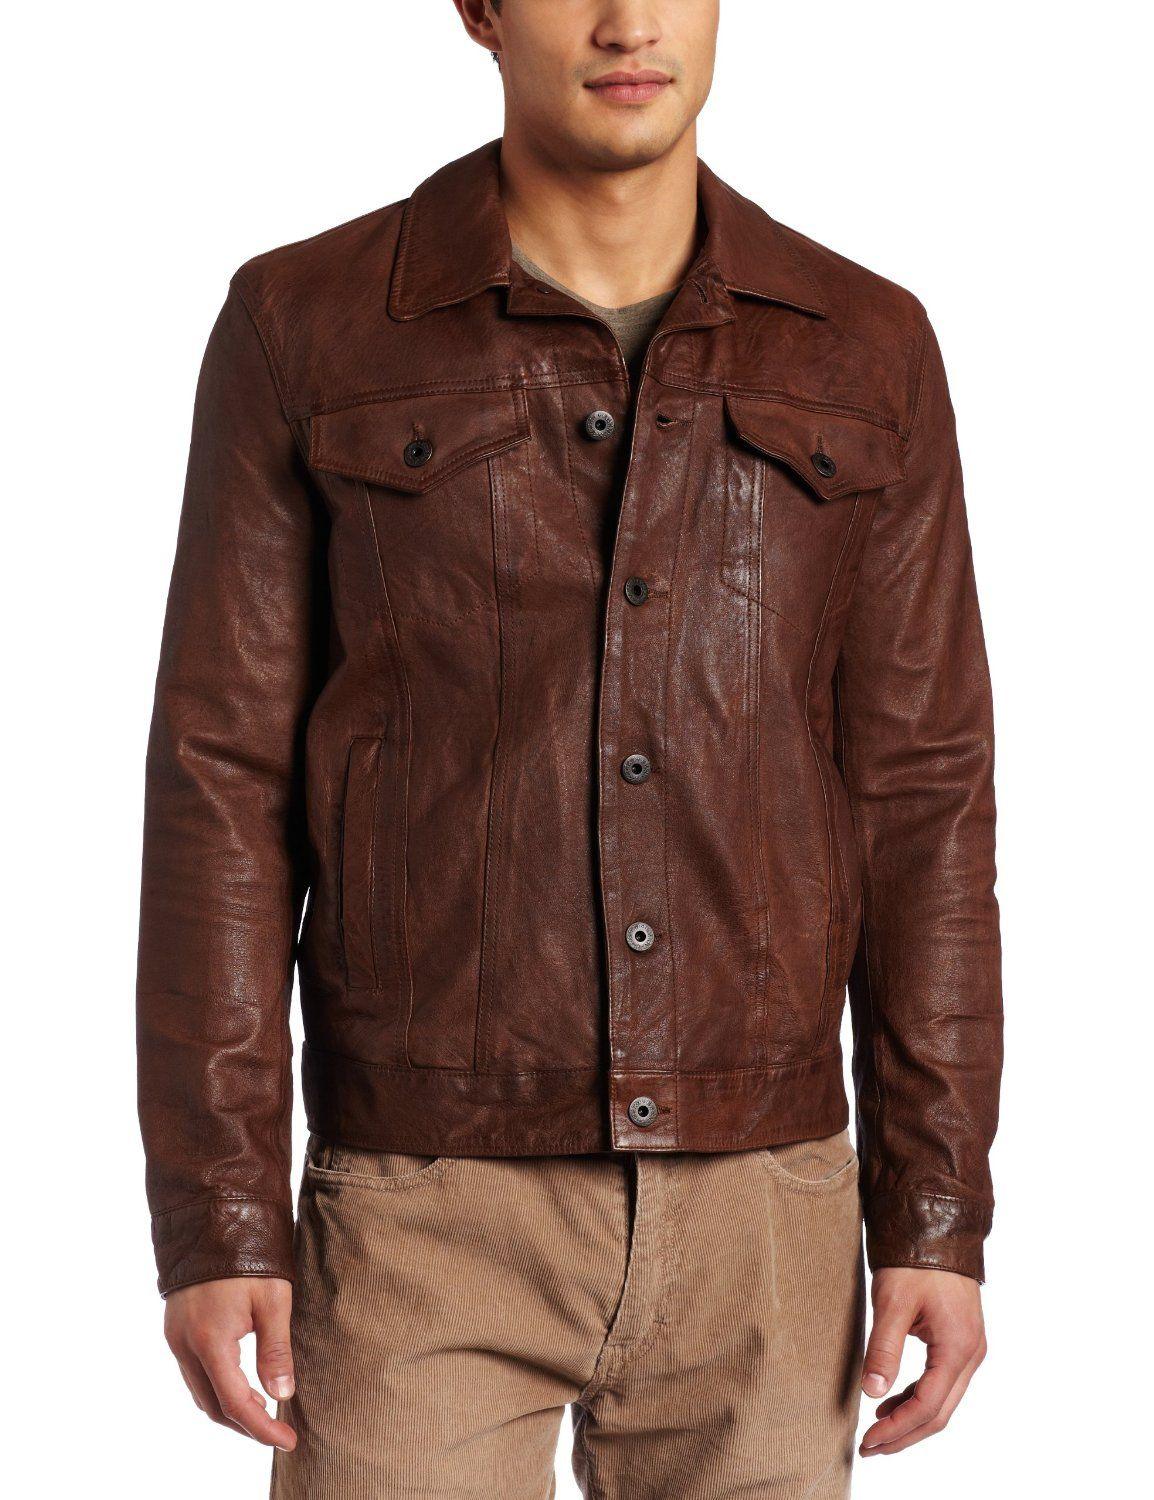 Levis brown leather trucker. Solid. Jackets men fashion